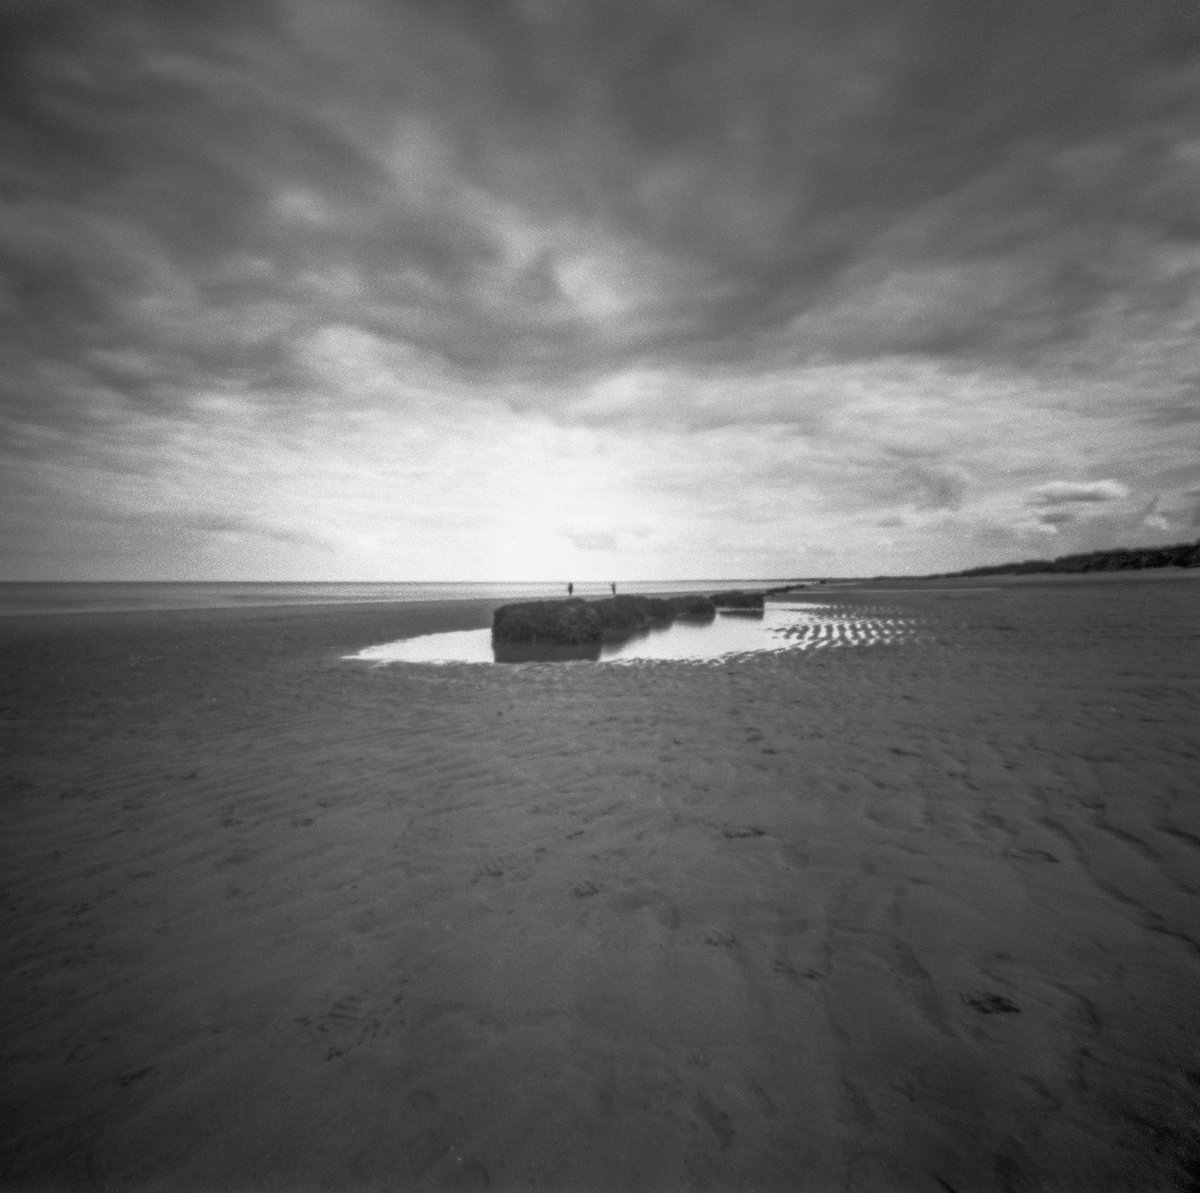 Peace on the beach #believeinfilm #blackandwhitephotography #Monochrome #pinholephotography #lensless #eastcoast #Yorkshire #mediumformat #6x6 #beach #ilford #panf